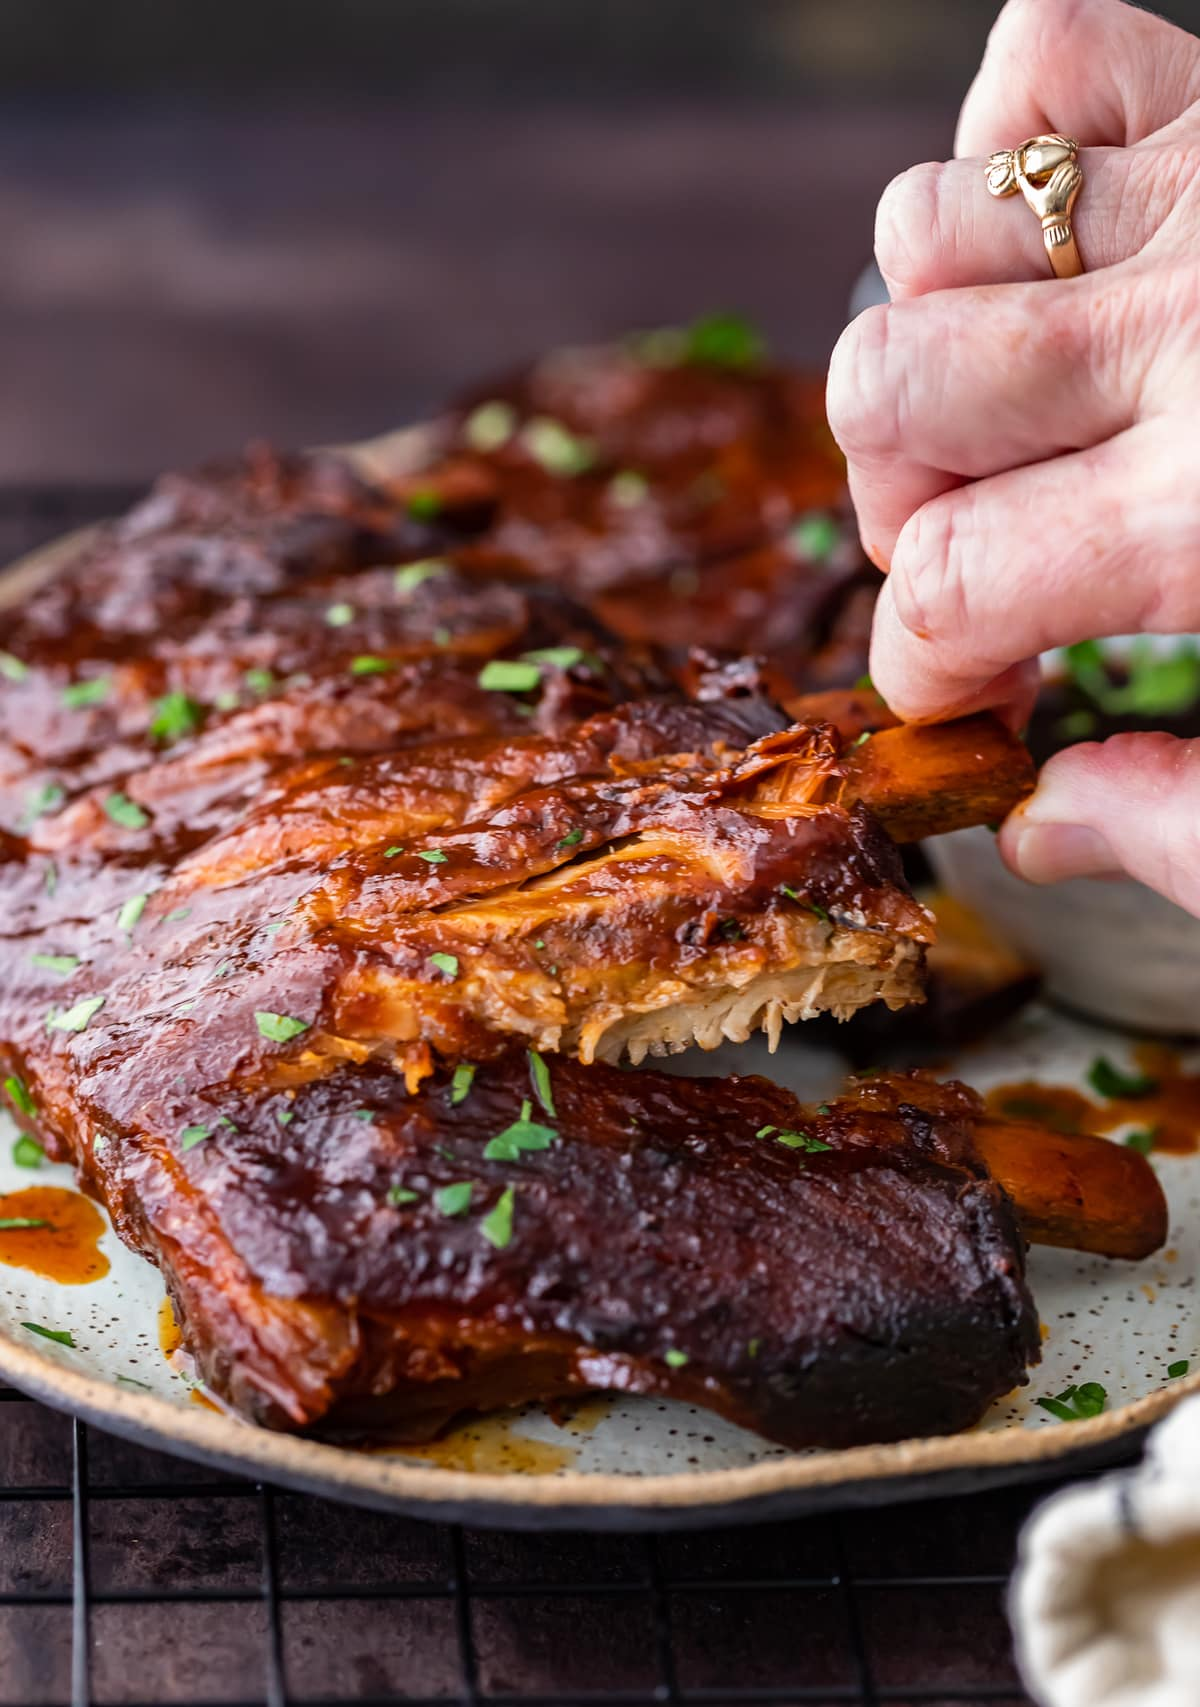 bbq ribs in a plate